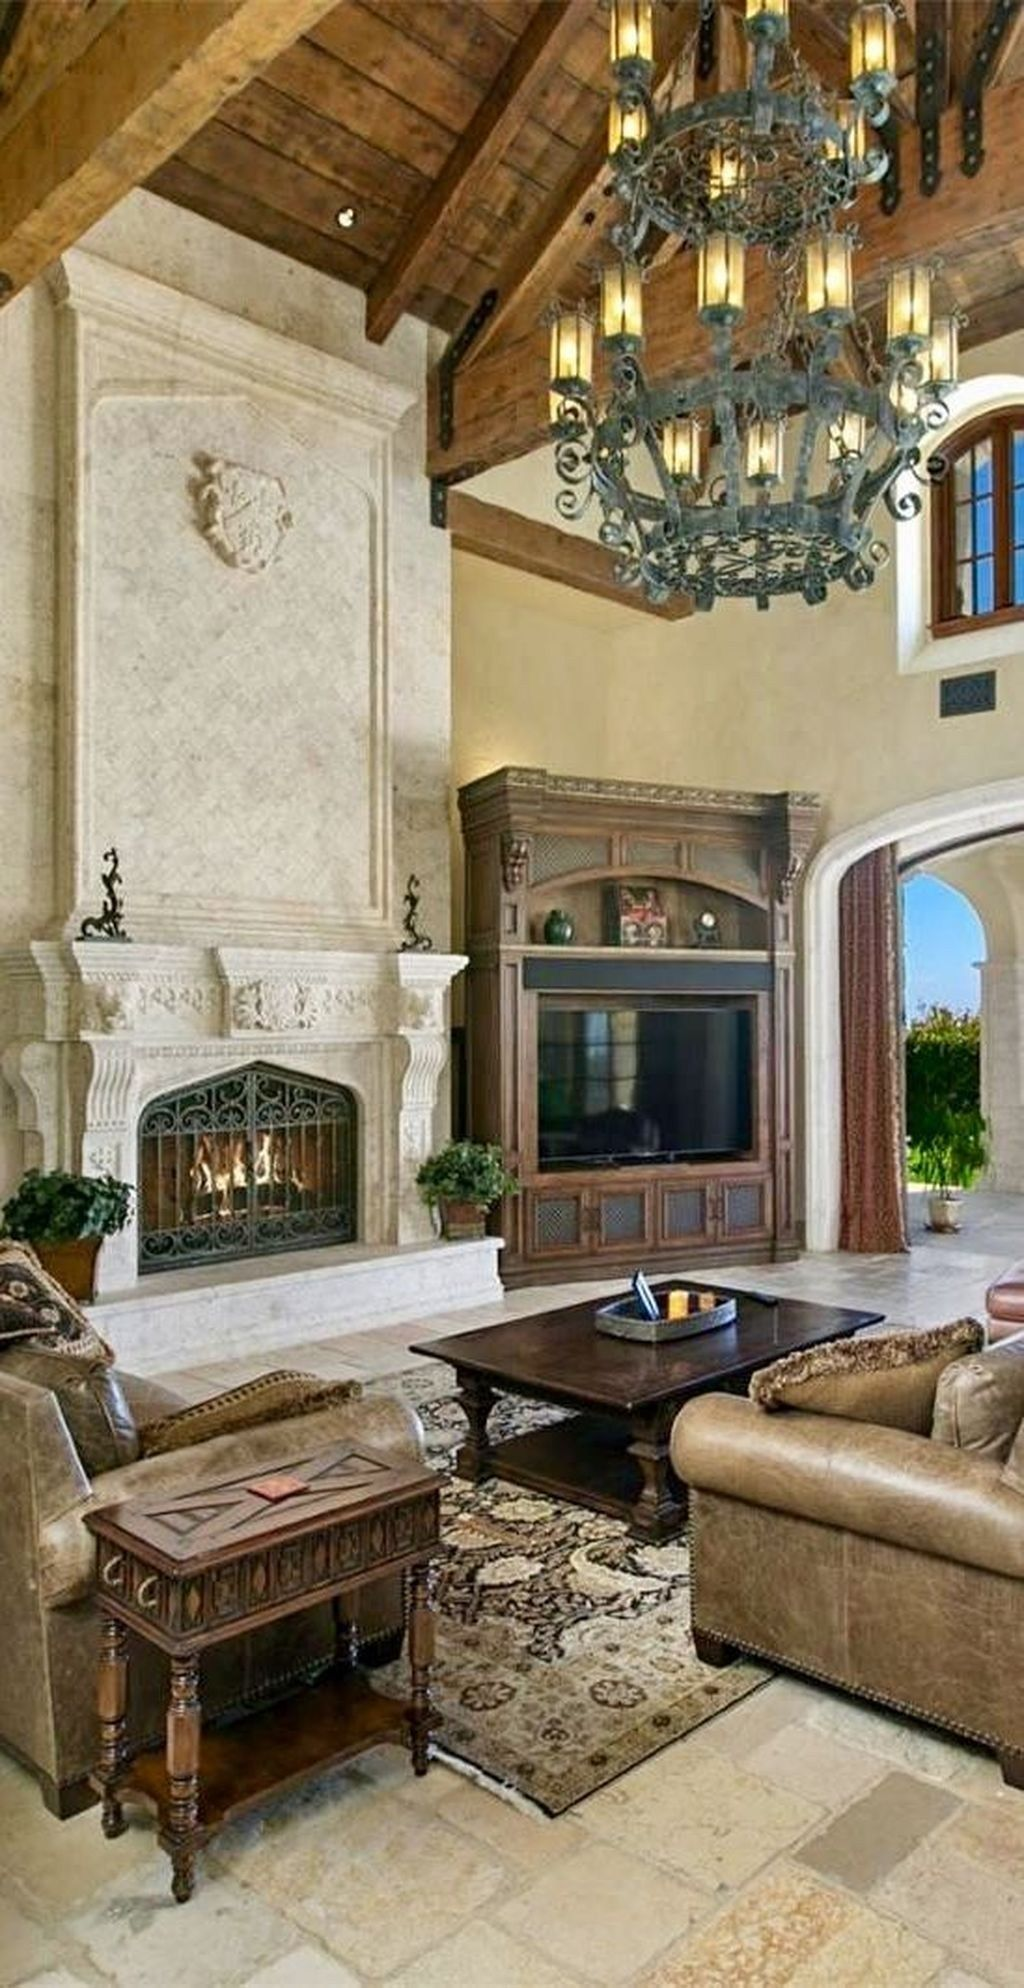 Elegant Tuscan Home Decor Ideas You Will Love 01 Tuscan House Mediterranean Home Decor Mediterranean Homes